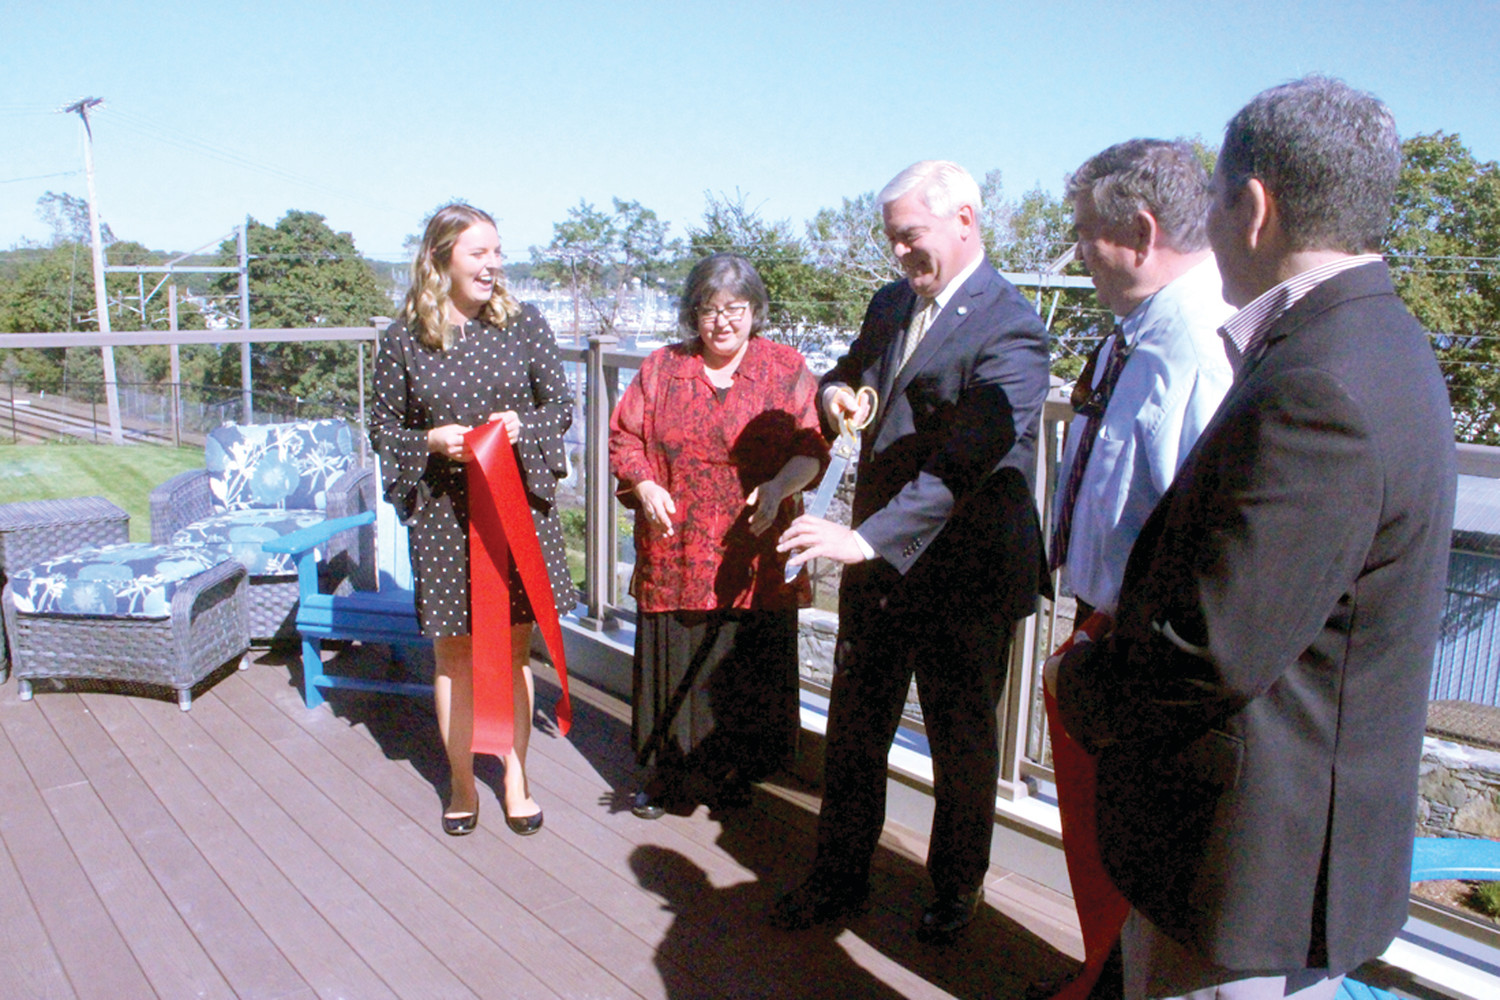 HANDING BACK THE SNIPS: The Miga family, staff of Brentwood by the Bay Assisted Living and guests joined on the terrace overlooking Greenwich Bay on Wednesday for the official opening of the facility in Cowesett. Here, Mayor Scott Avedisian hands back the scissors following the ribbon cutting.